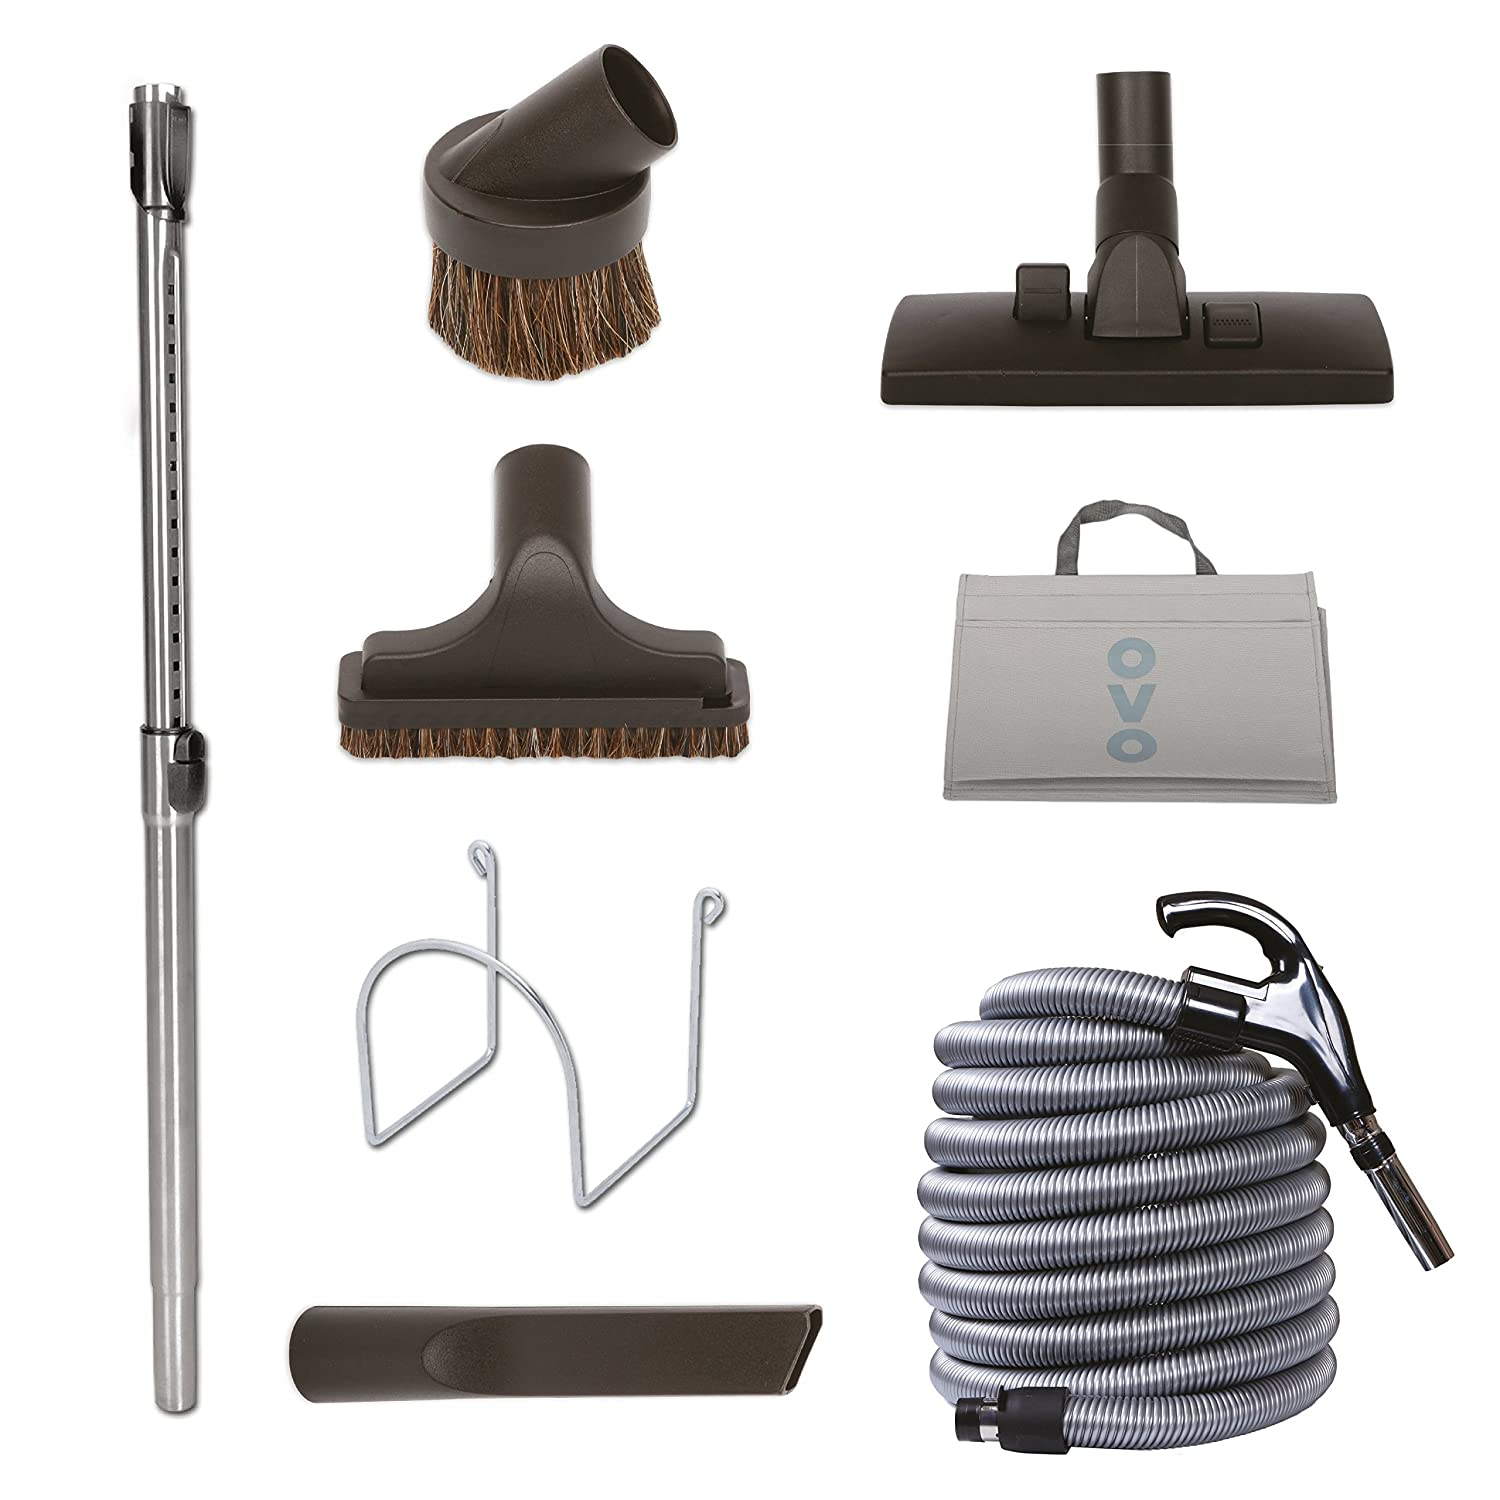 Nadair KIT-LV30S-OVO Central Vacuum Hardwood Floor Brush Cleaning Tools Attachment Kit - Tile Floors and Hard Surfaces - 30 ft. Switch Control Crushproof Hose